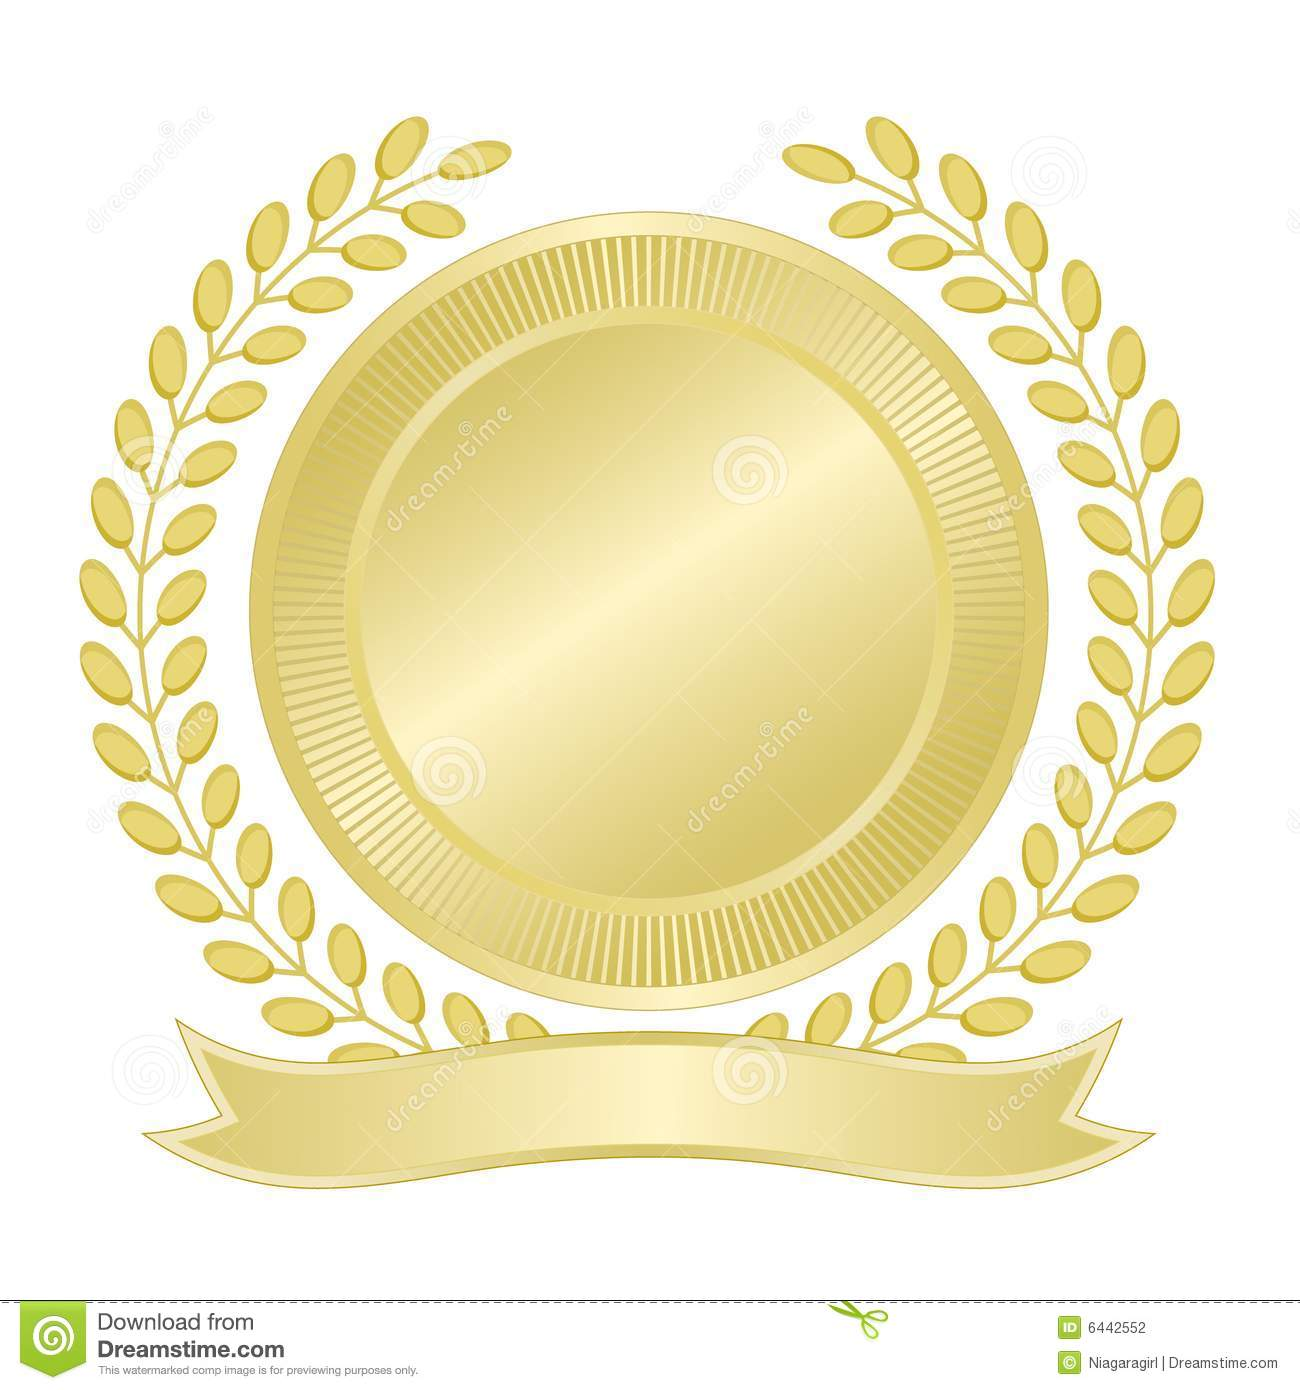 Blank Gold Seal Stock Vector Illustration Of Wreath